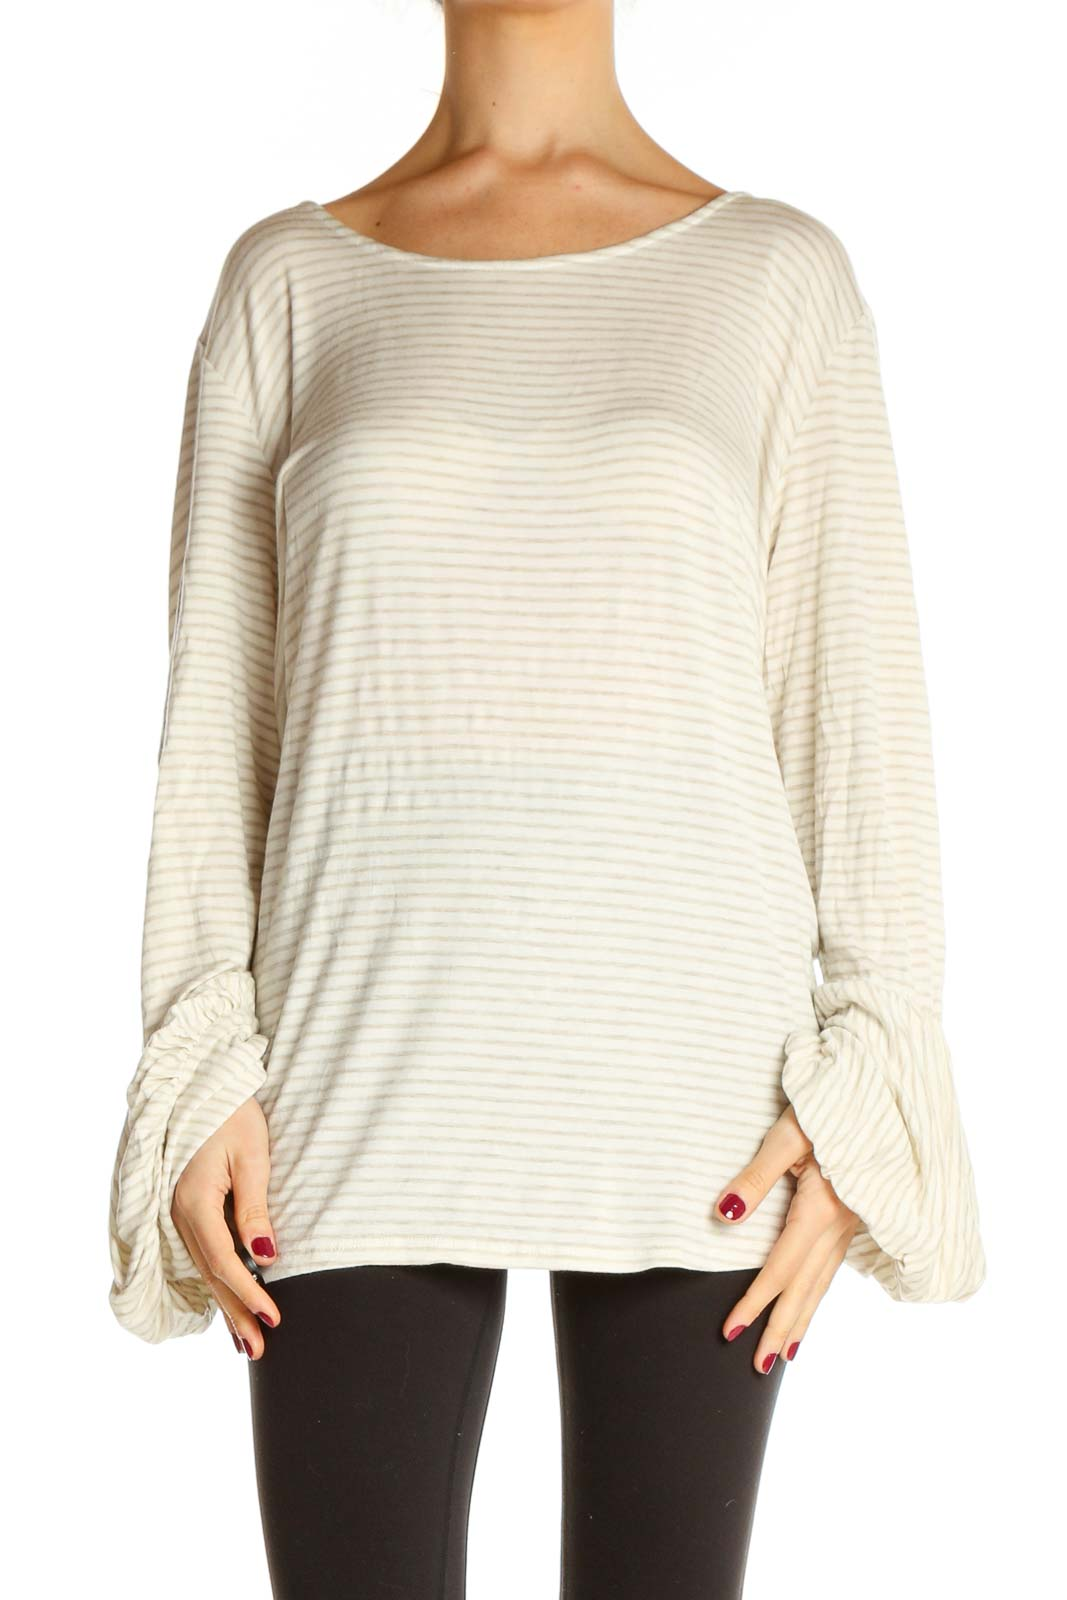 Beige Striped All Day Wear Sweater Front